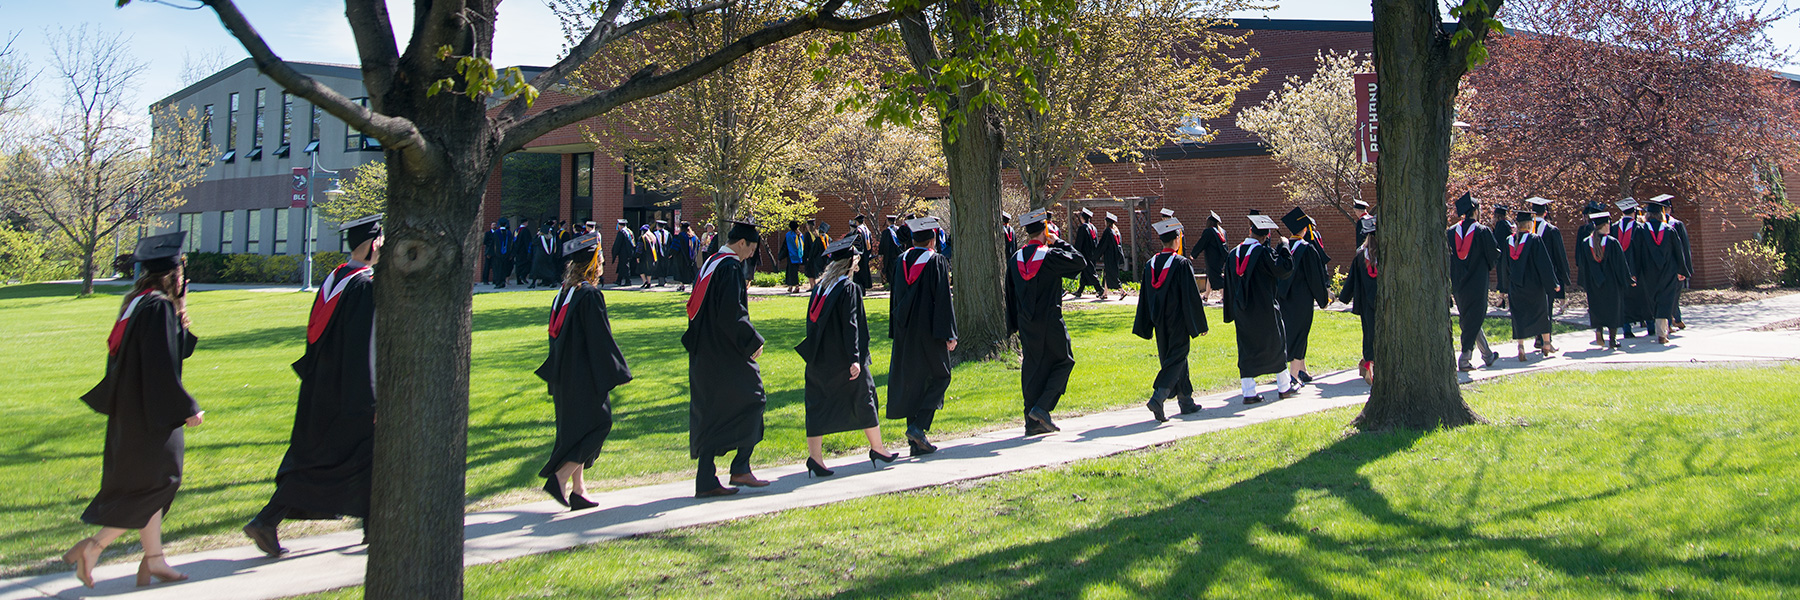 students walking on a sidewalk in graduation robes and caps